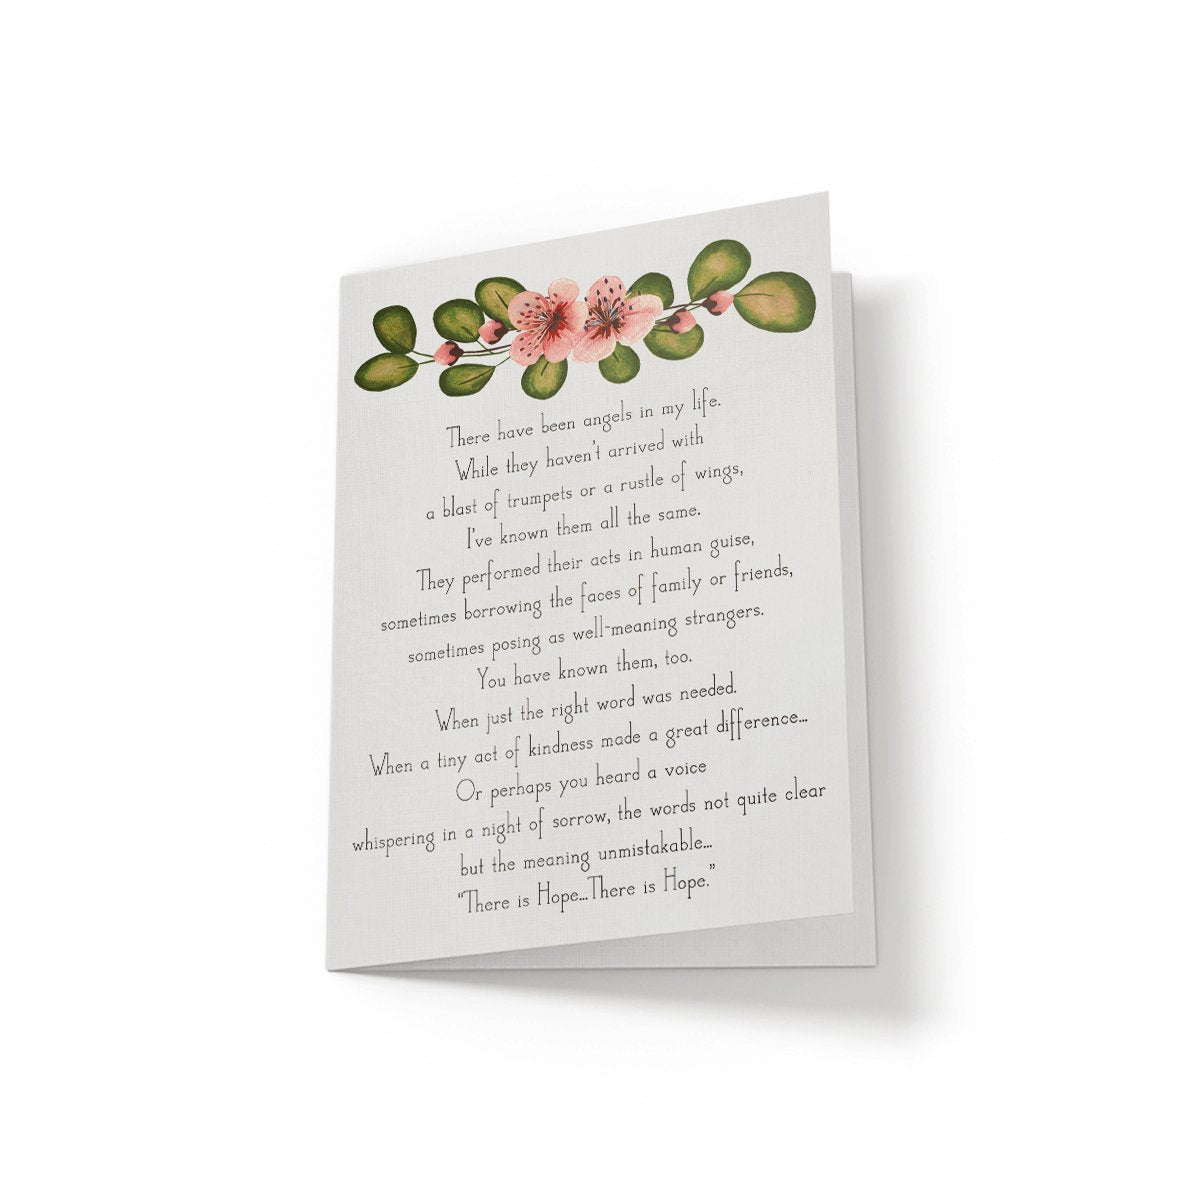 There have been angels in my life - Greeting Card - Netties Expressions